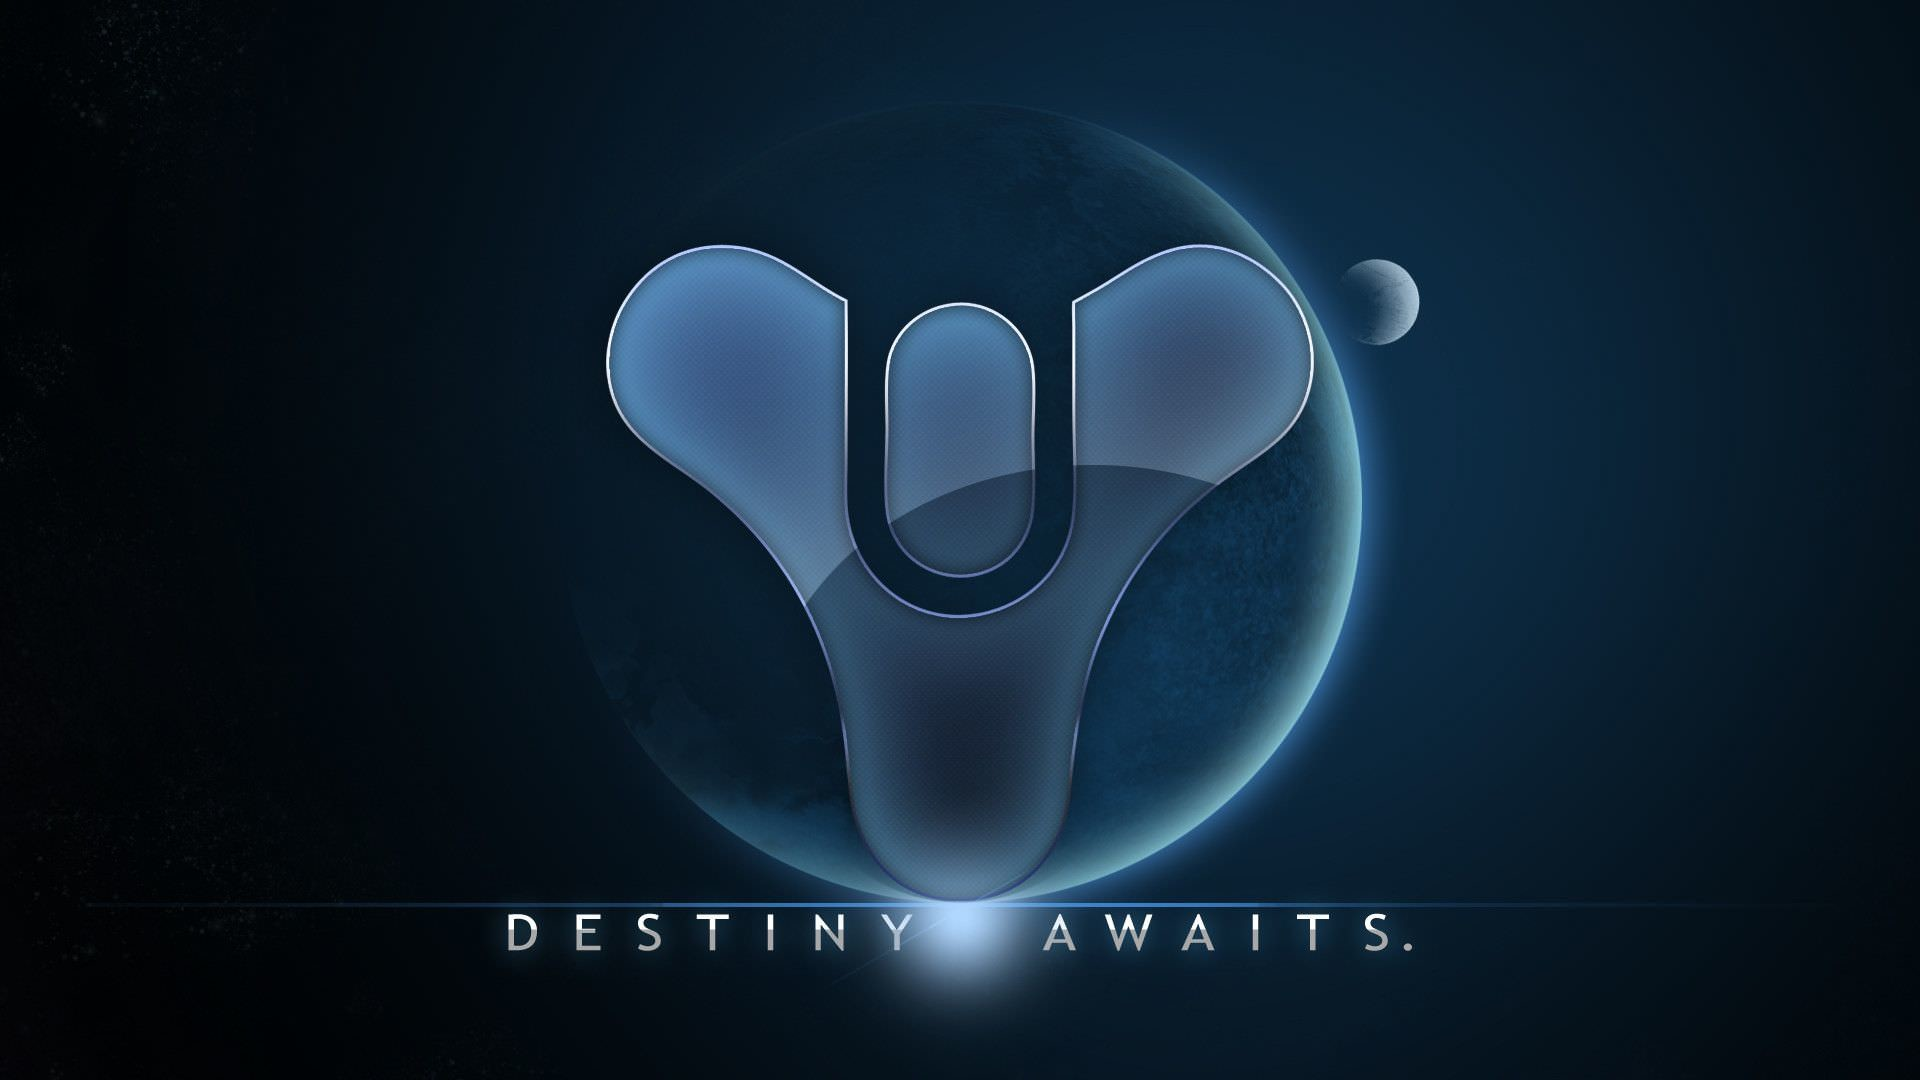 1920x1080 Cool Destiny Wallpapers